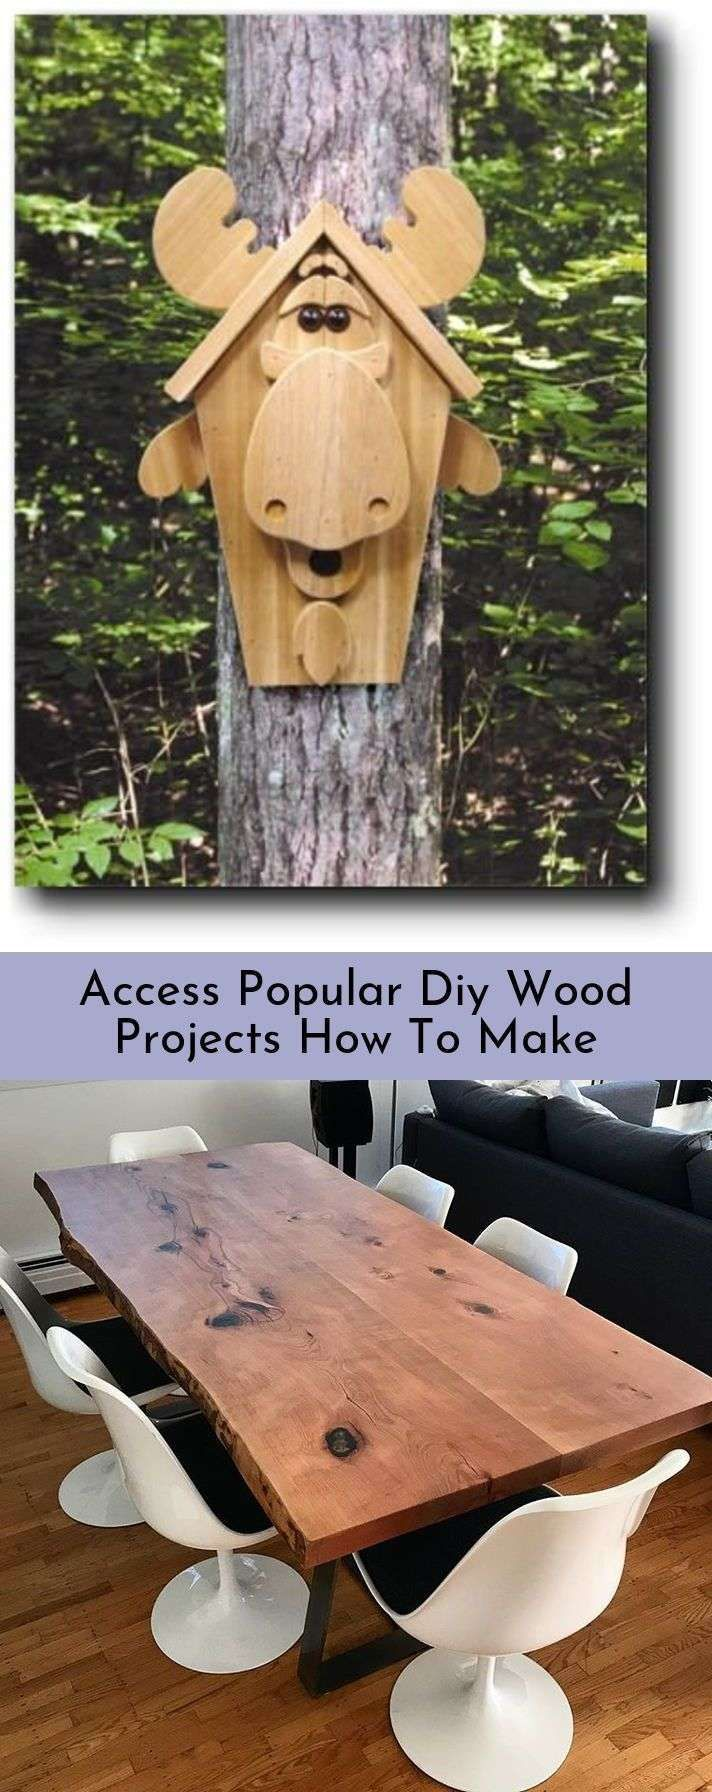 diy wood projects plans diy wood projects diy furniture on useful diy wood project ideas beginner woodworking plans id=14211